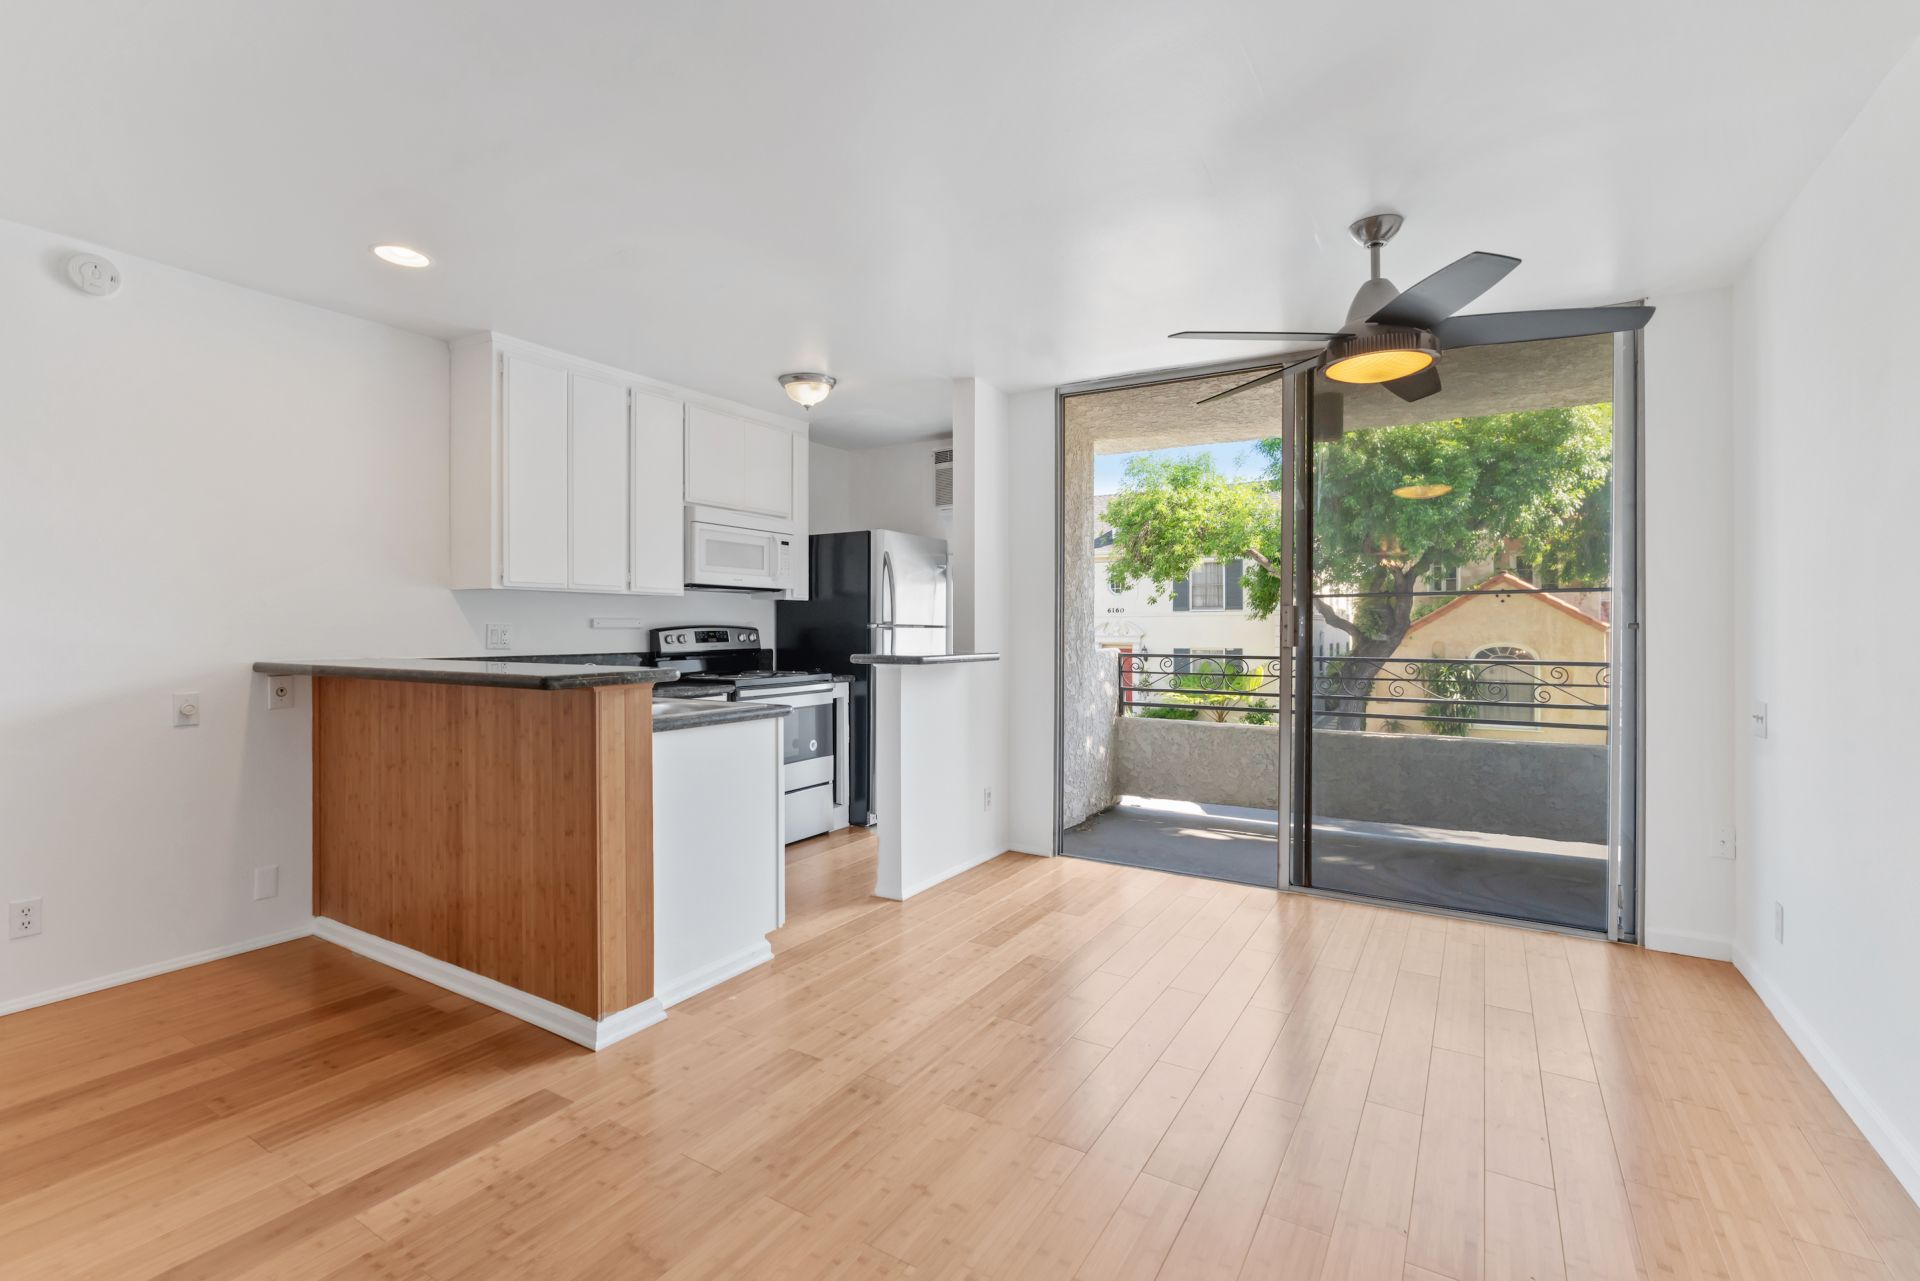 JUST LISTED: 1 Bed + 1 Bath Condo in PRIME Miracle Mile / Museum Square